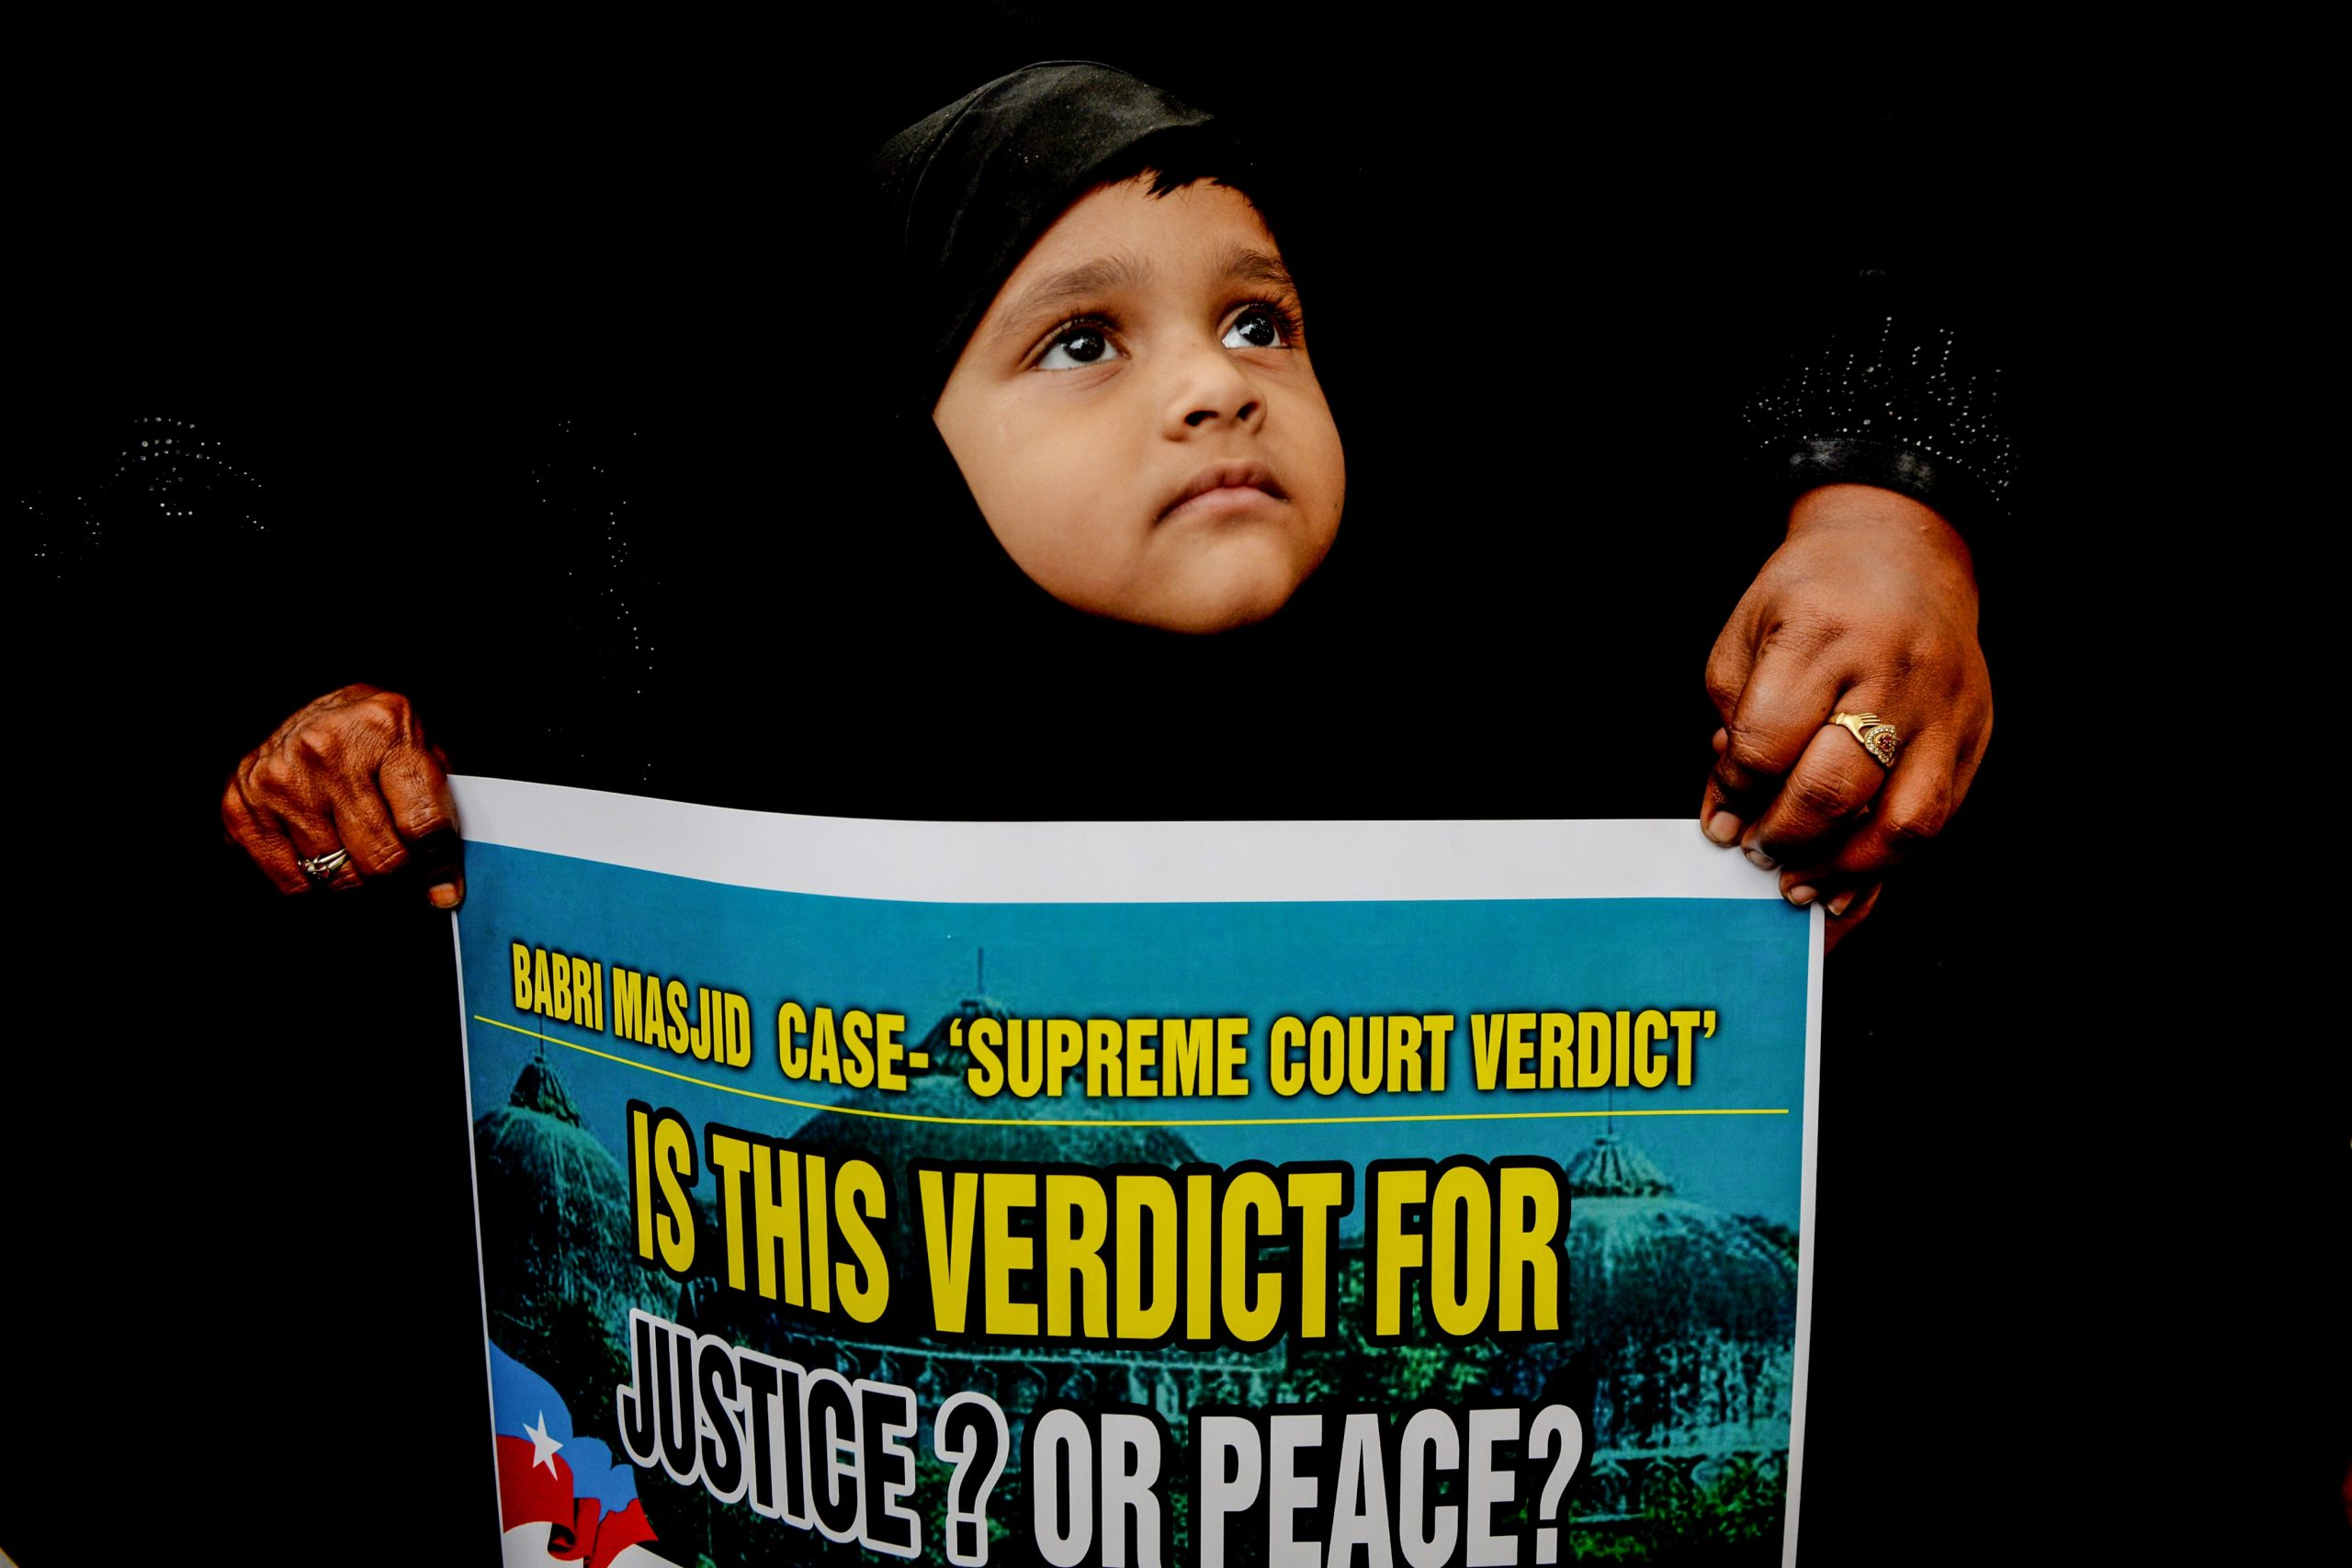 A muslim girl looks on as Muslims and members of Tamil ethnic group hold placards during a demonstration against the Supreme Court verdict awarded to Hindus on a disputed religious site of Ayodhya in Chennai on November 21, 2019. (Photo by ARUN SANKAR / AFP) Getty Images)